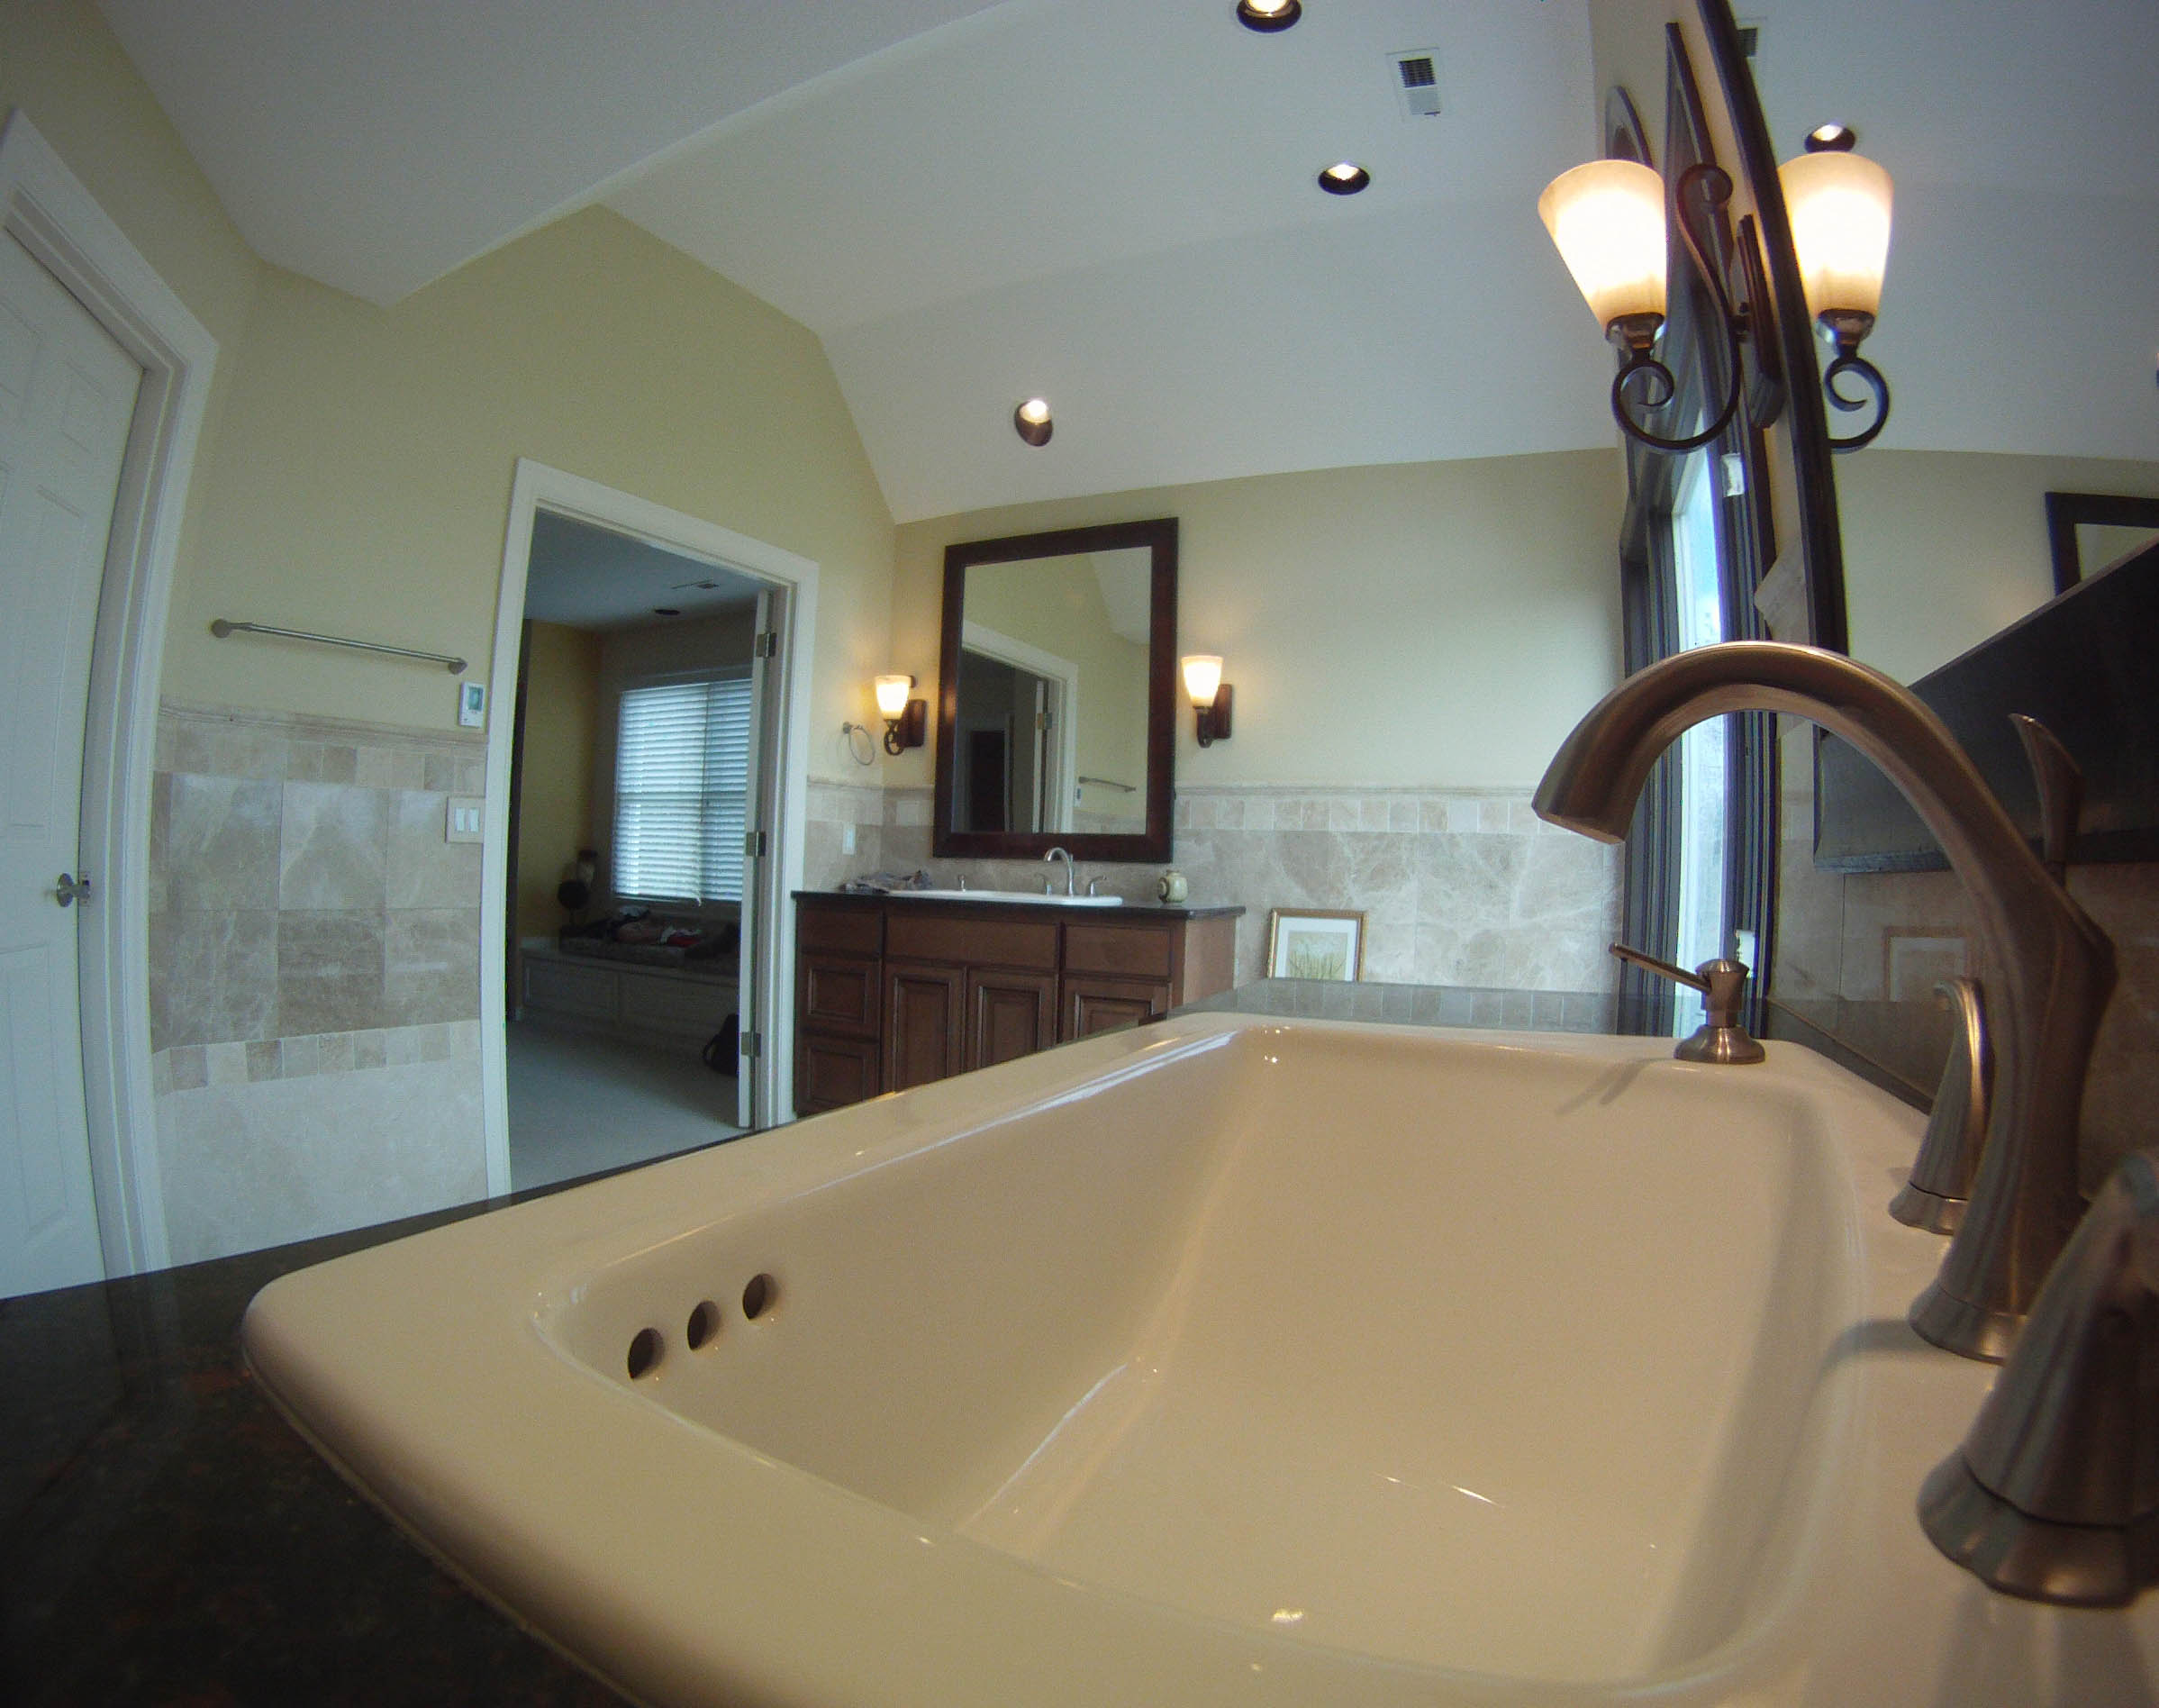 3 low cost bathroom remodel ideas affinity home design Remodeling bathrooms cost